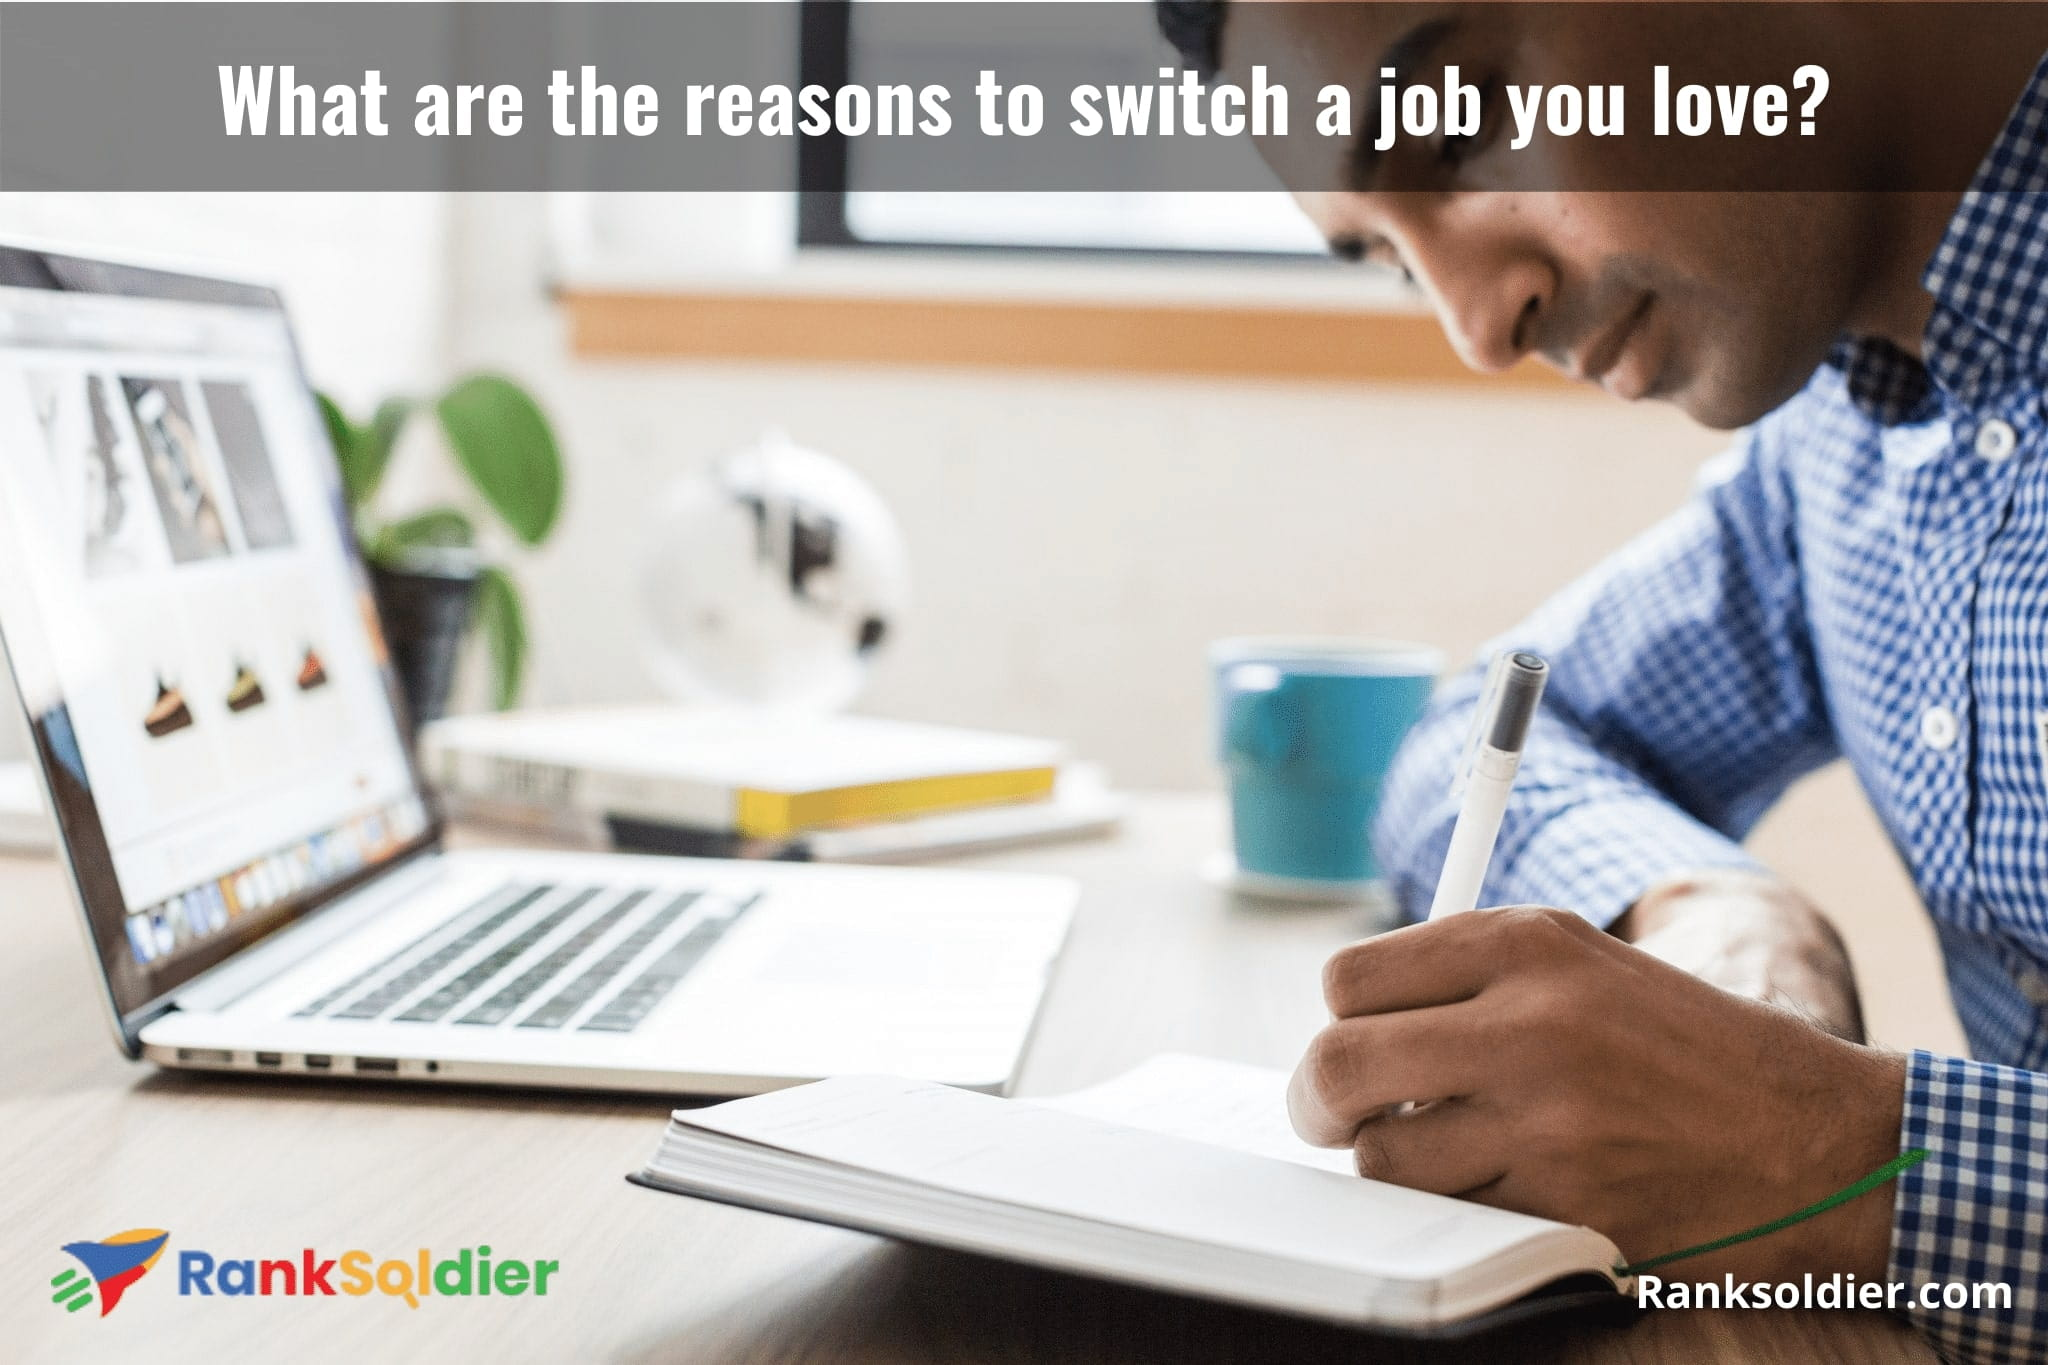 What are the reasons to switch a job you